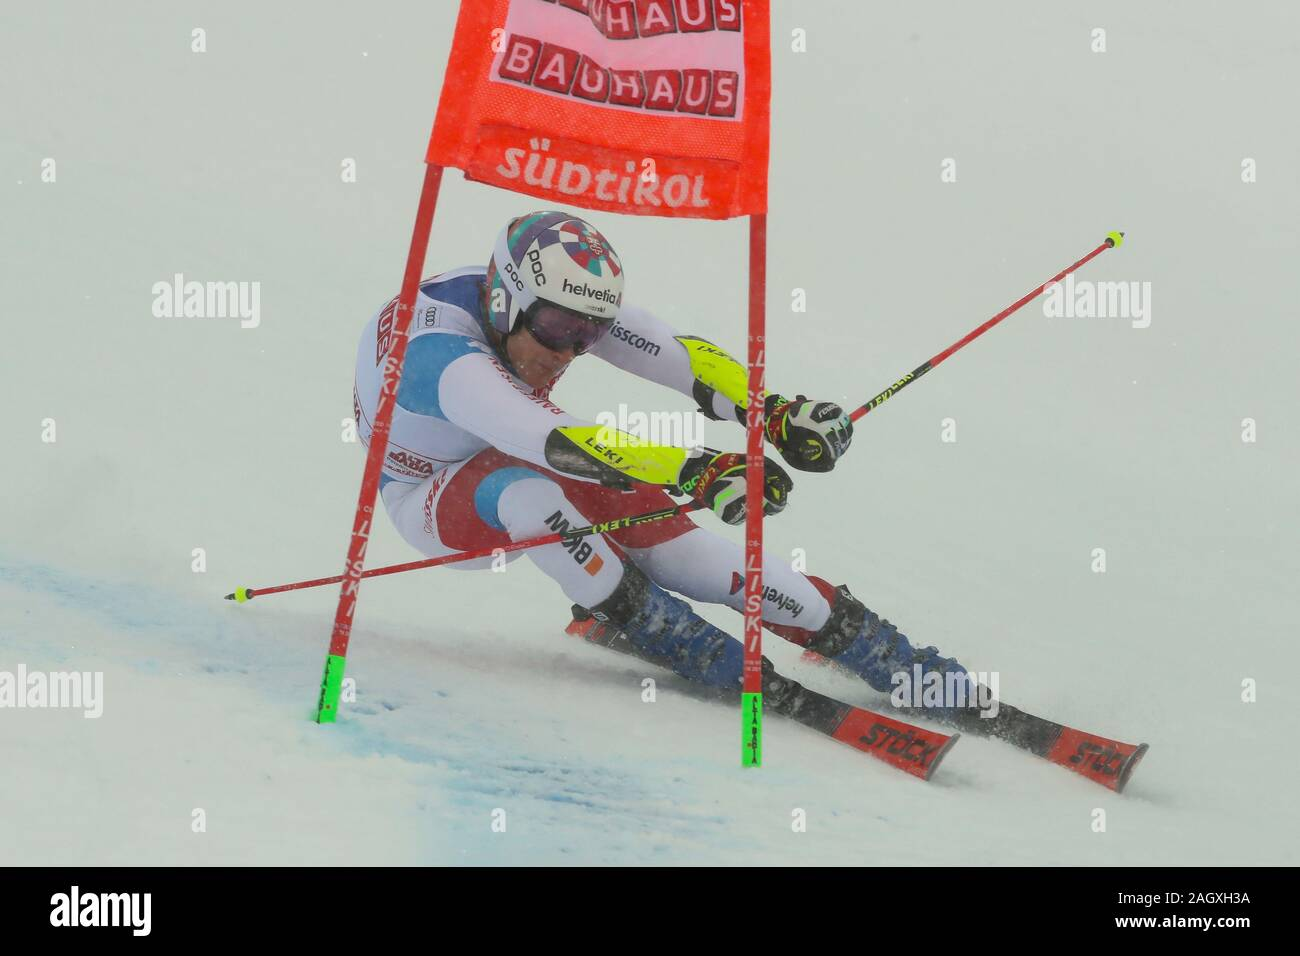 Alta Badia, Italy. 22nd Dec, 2019. odermatt marco (sui) 5th classifiedduring FIS SKI WORLD CUP 2019 - Giant Slalom Men, Ski in Alta Badia, Italy, December 22 2019 - LPS/Sergio Bisi Credit: Sergio Bisi/LPS/ZUMA Wire/Alamy Live News Stock Photo